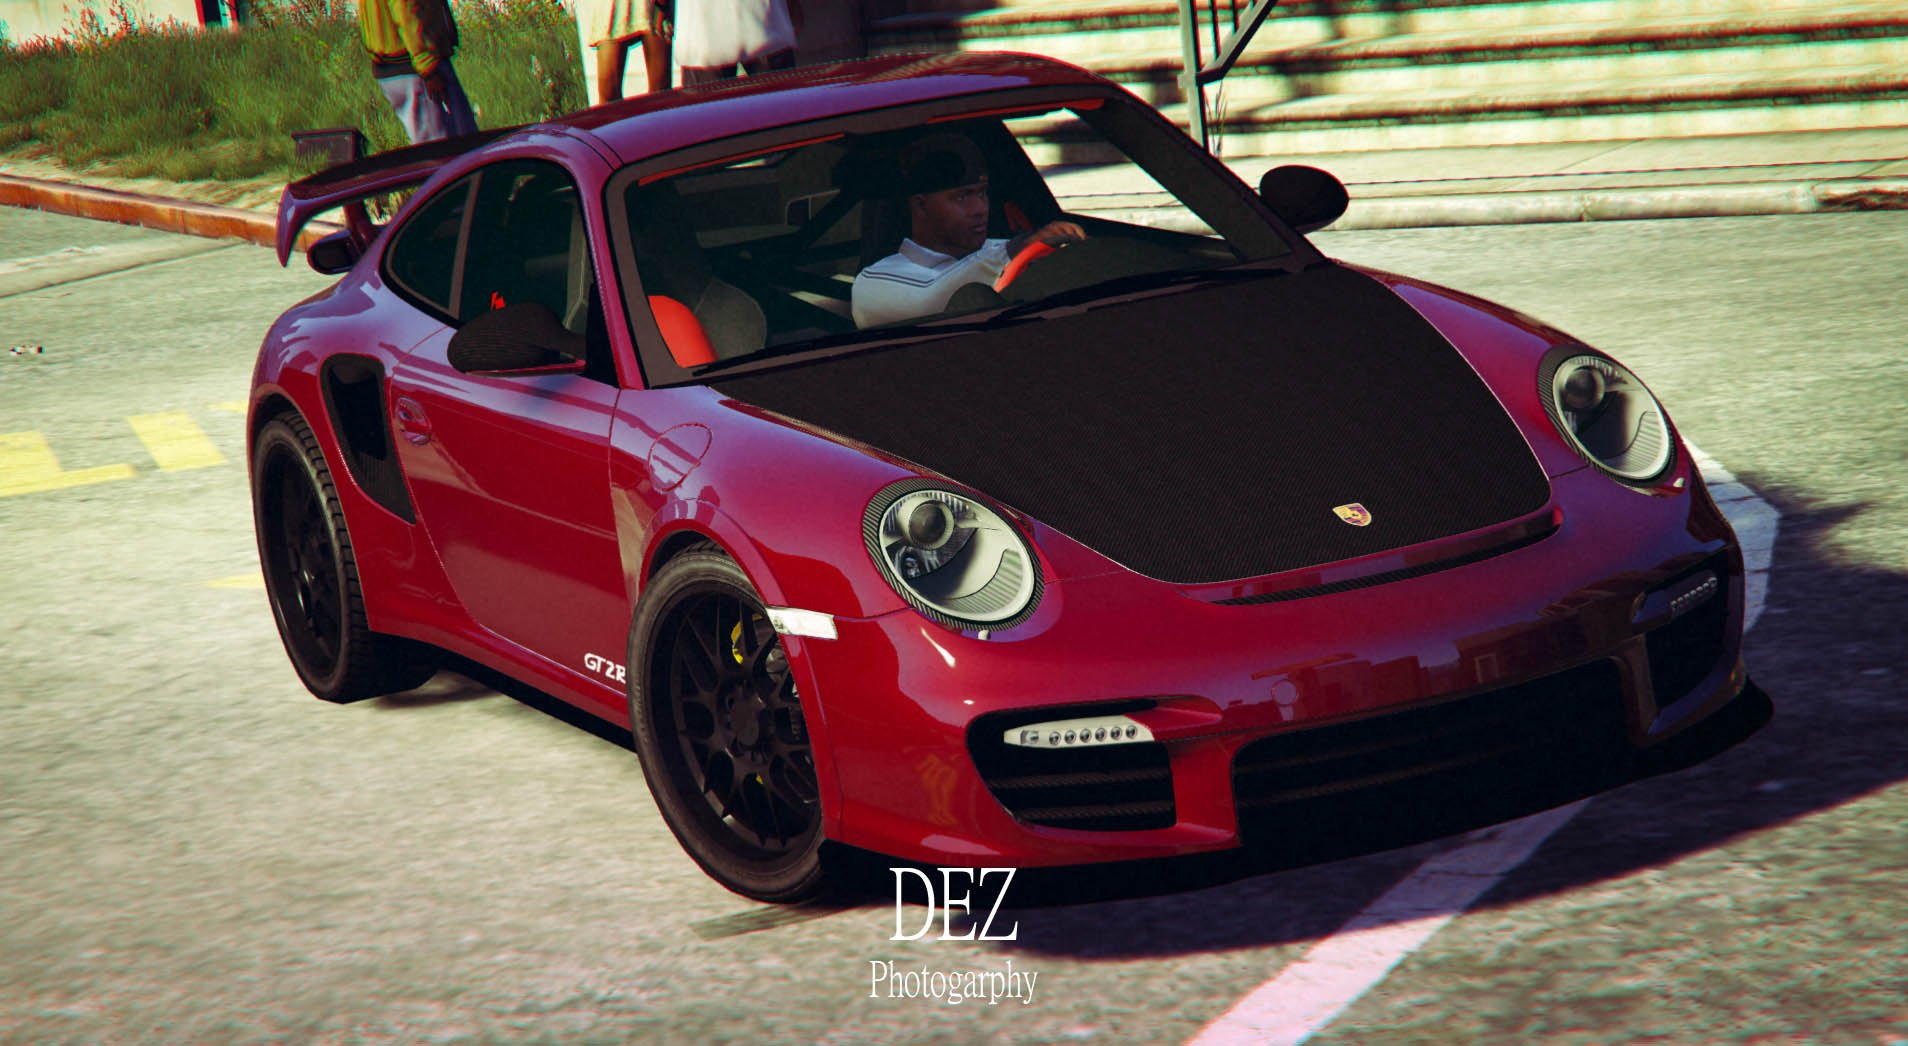 porsche 911 997 gt2 rs vehicules pour gta v sur gta modding. Black Bedroom Furniture Sets. Home Design Ideas